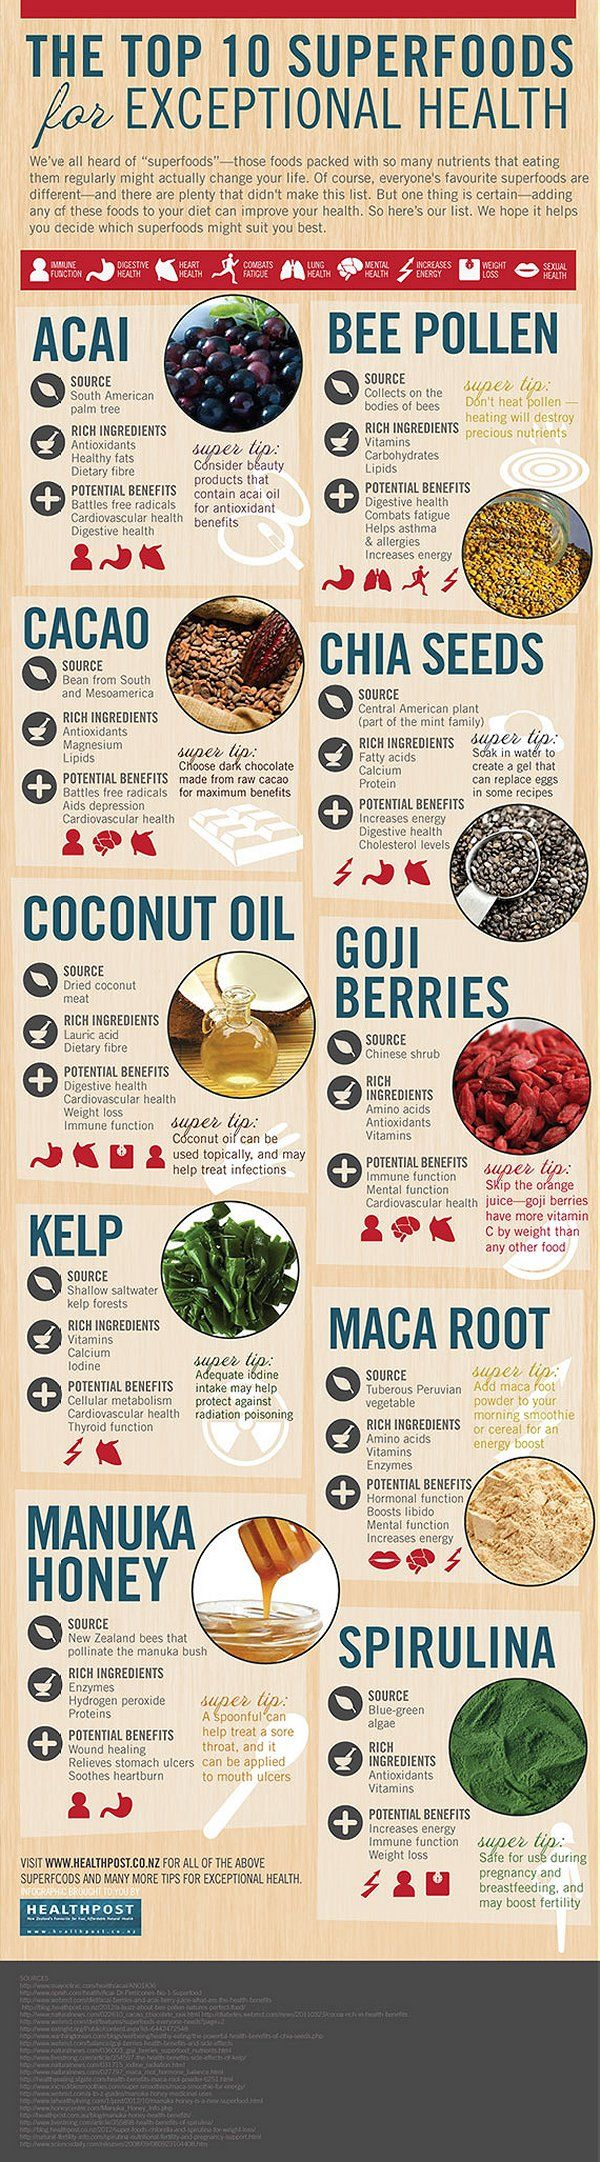 Top 10 Super Foods: coconut oil, Goji Berries, acai, kelp, maca root, bee pollen, chia seeds, spirulina, manuka honey, cacao